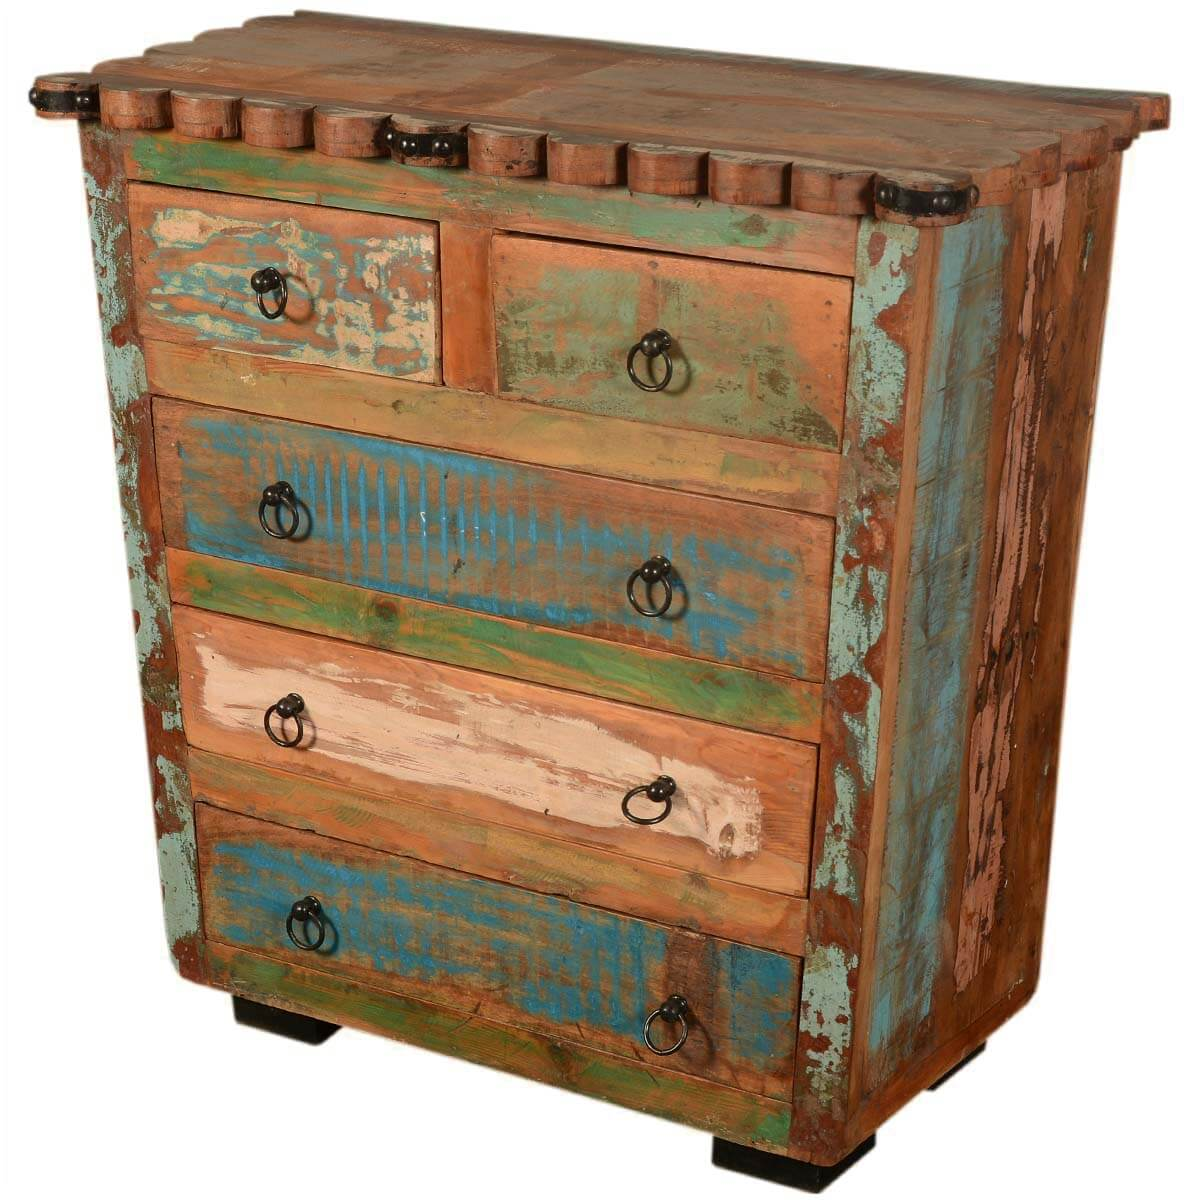 paint box rustic reclaimed wood scalloped edge chest of drawers. Black Bedroom Furniture Sets. Home Design Ideas